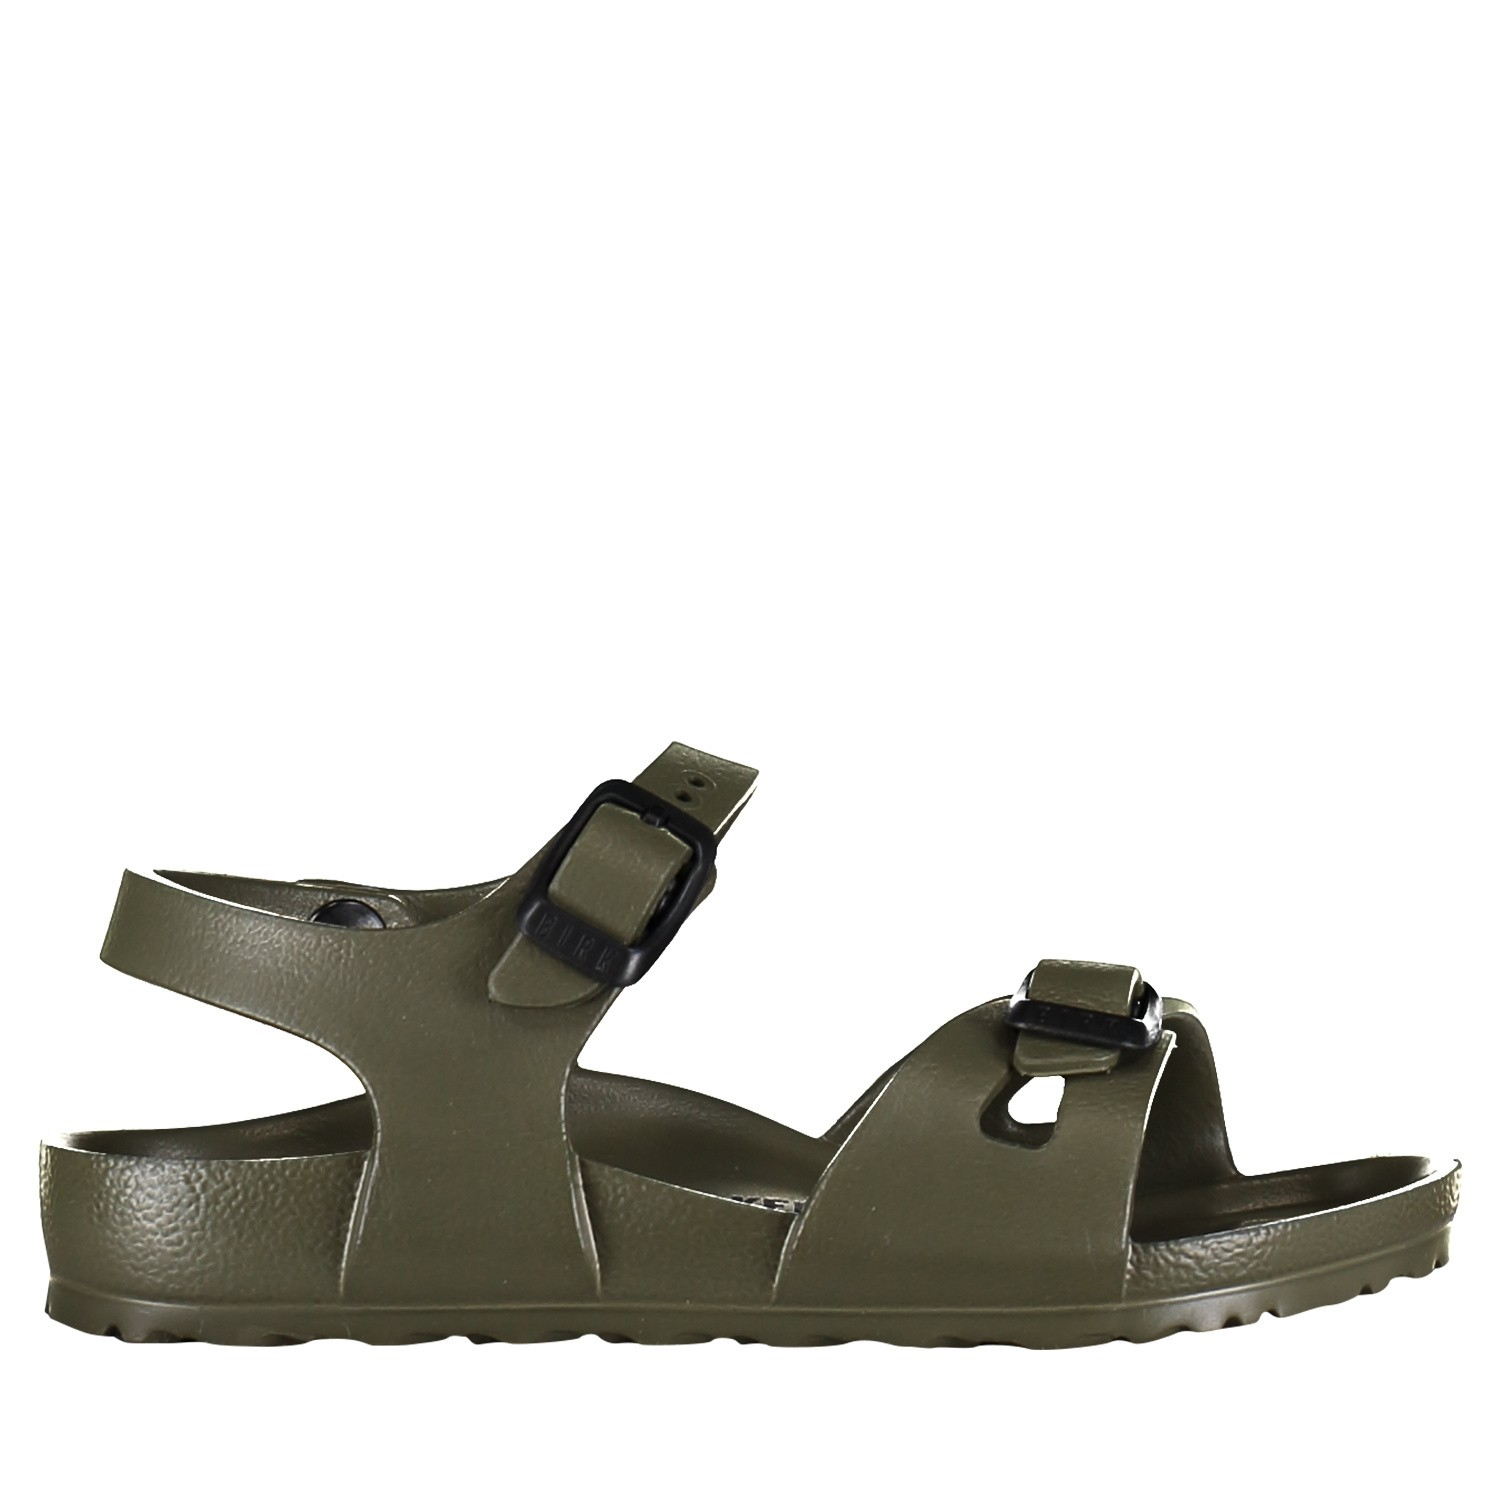 Picture of Birkenstock EVA RIO kids sandals army